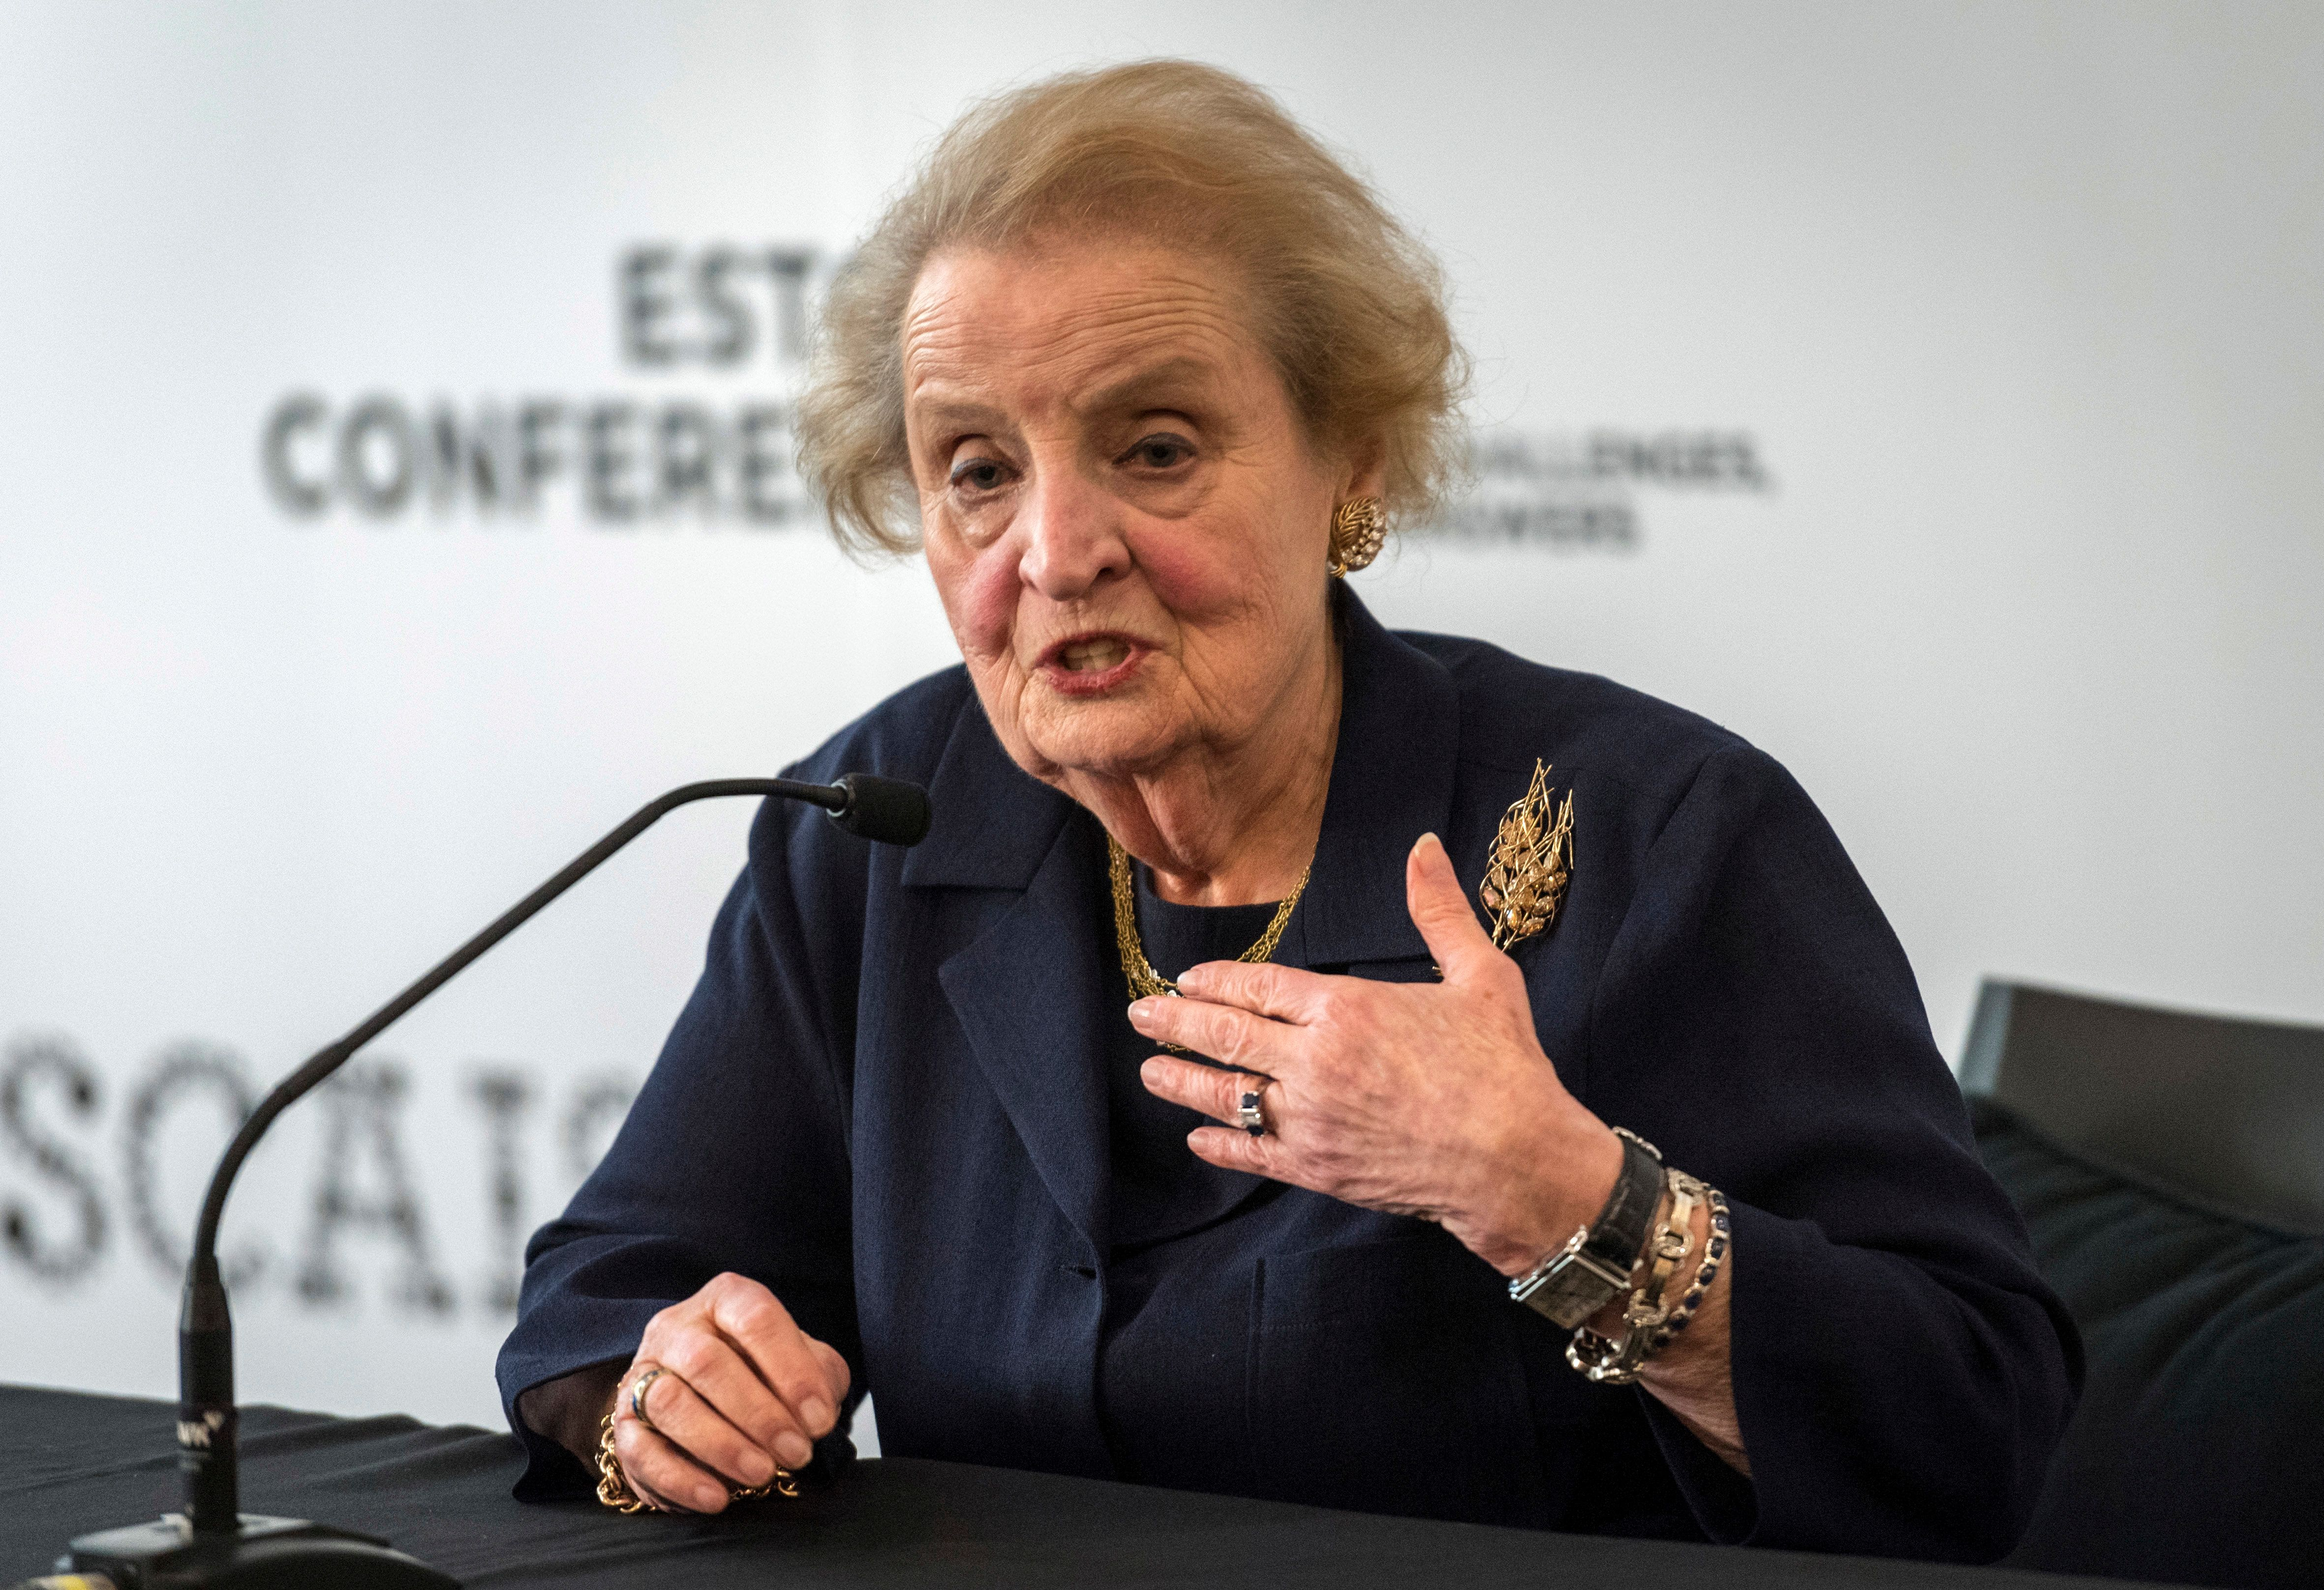 ESTORIL, PORTUGAL - MAY 31: Former United States Secretary of State Madeleine Albright meets the press at the end of her conference on 'Challenges to Open Democracies' on May 31, 2017 in Estoril, Portugal. The Estoril Conferences are a global meeting that takes place every other year under the subject 'Global Challenges, Local Answers'. The event, under the high patronage of the President of Portugal, deals with globalization and political, economic, social and cultural changes occurring nowadays that promote and accelerate new international players, schisms, inter-connections and interdependences among peoples, countries and regions. (Photo by Horacio Villalobos - Corbis/Corbis via Getty Images)